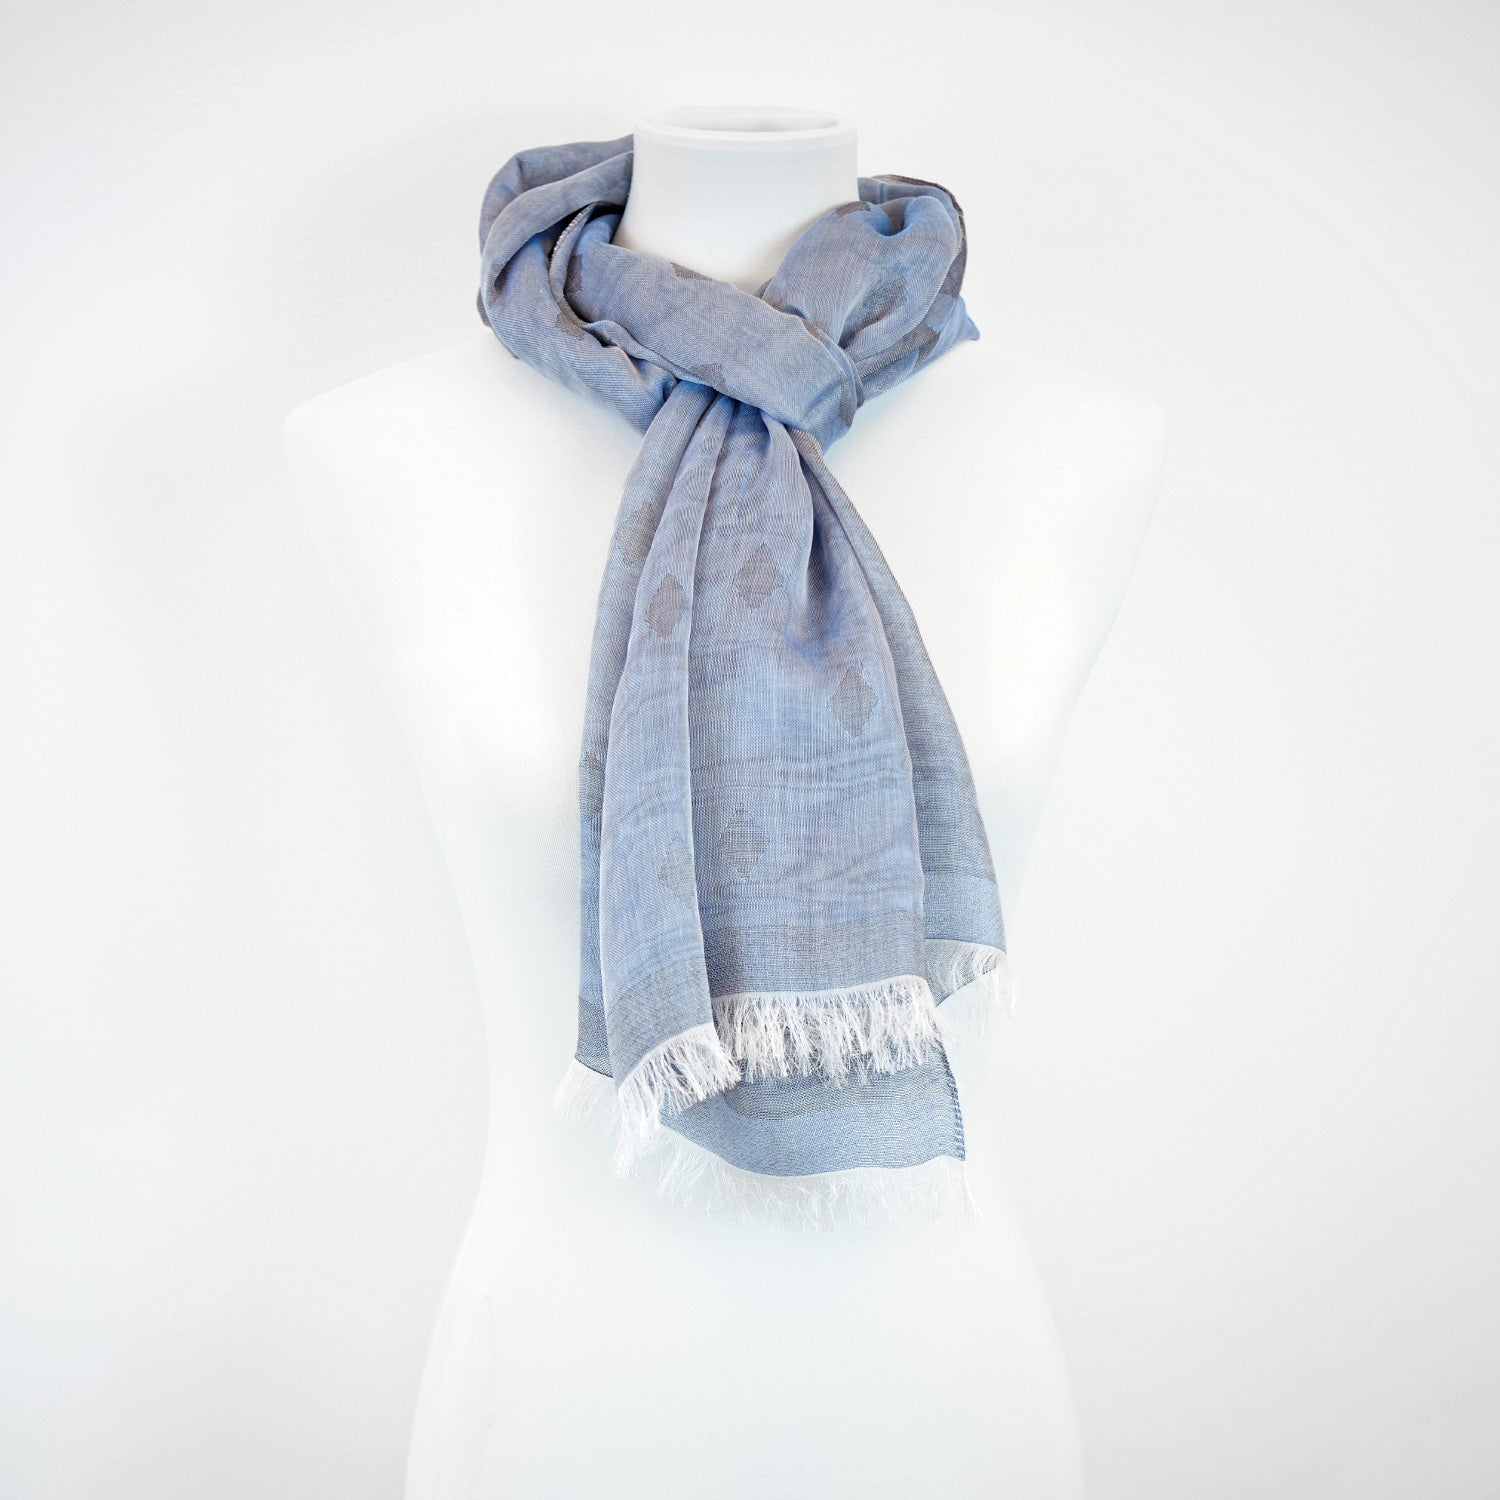 Doria & Dojola Diamonds Cotton blend Scarf. 80% Modal 25% Cotton 15% polyester  50 x 180 cm. 100% Made in Italy. Pictured: Blue Scarf.